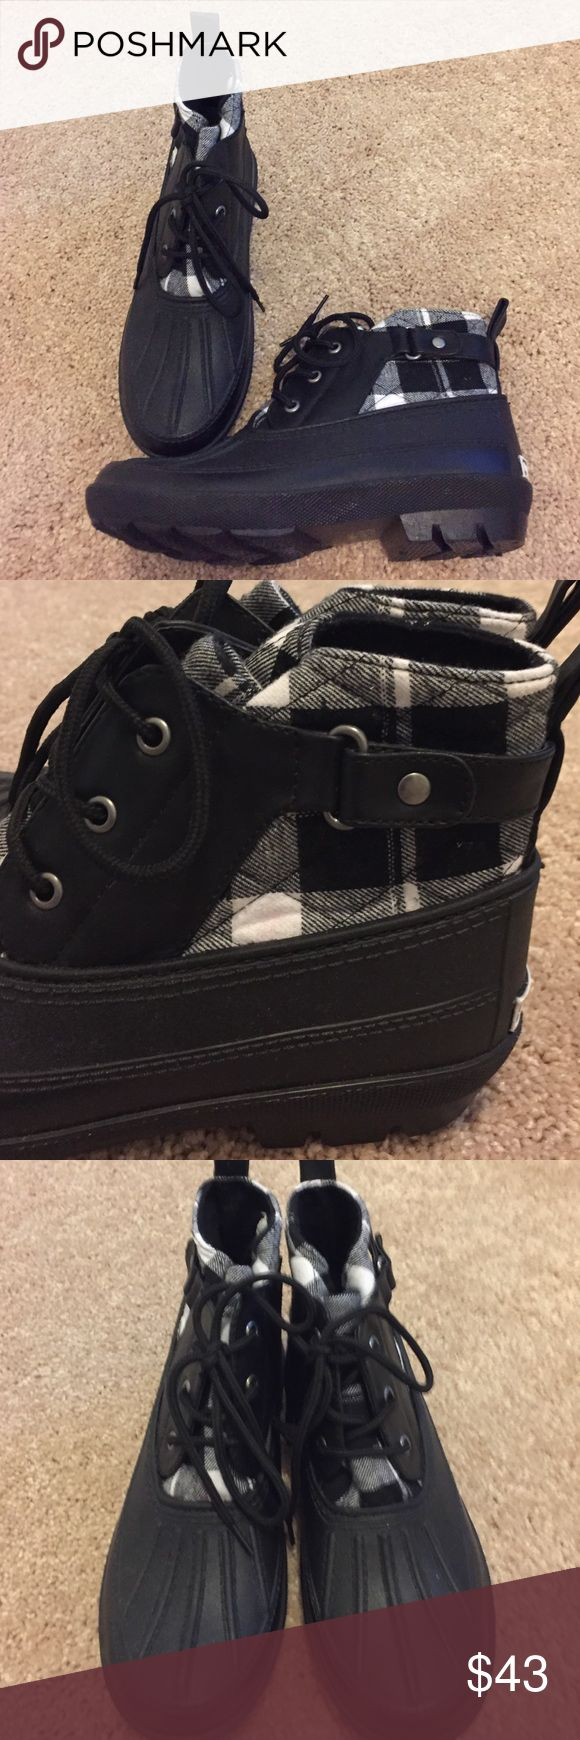 ✨RUBBER rain/snow short ankle boots✨New✨ Black and white checker soft material - black rubber  - size 7 -7.5 never worn. No box. Dirty Laundry Shoes Winter & Rain Boots